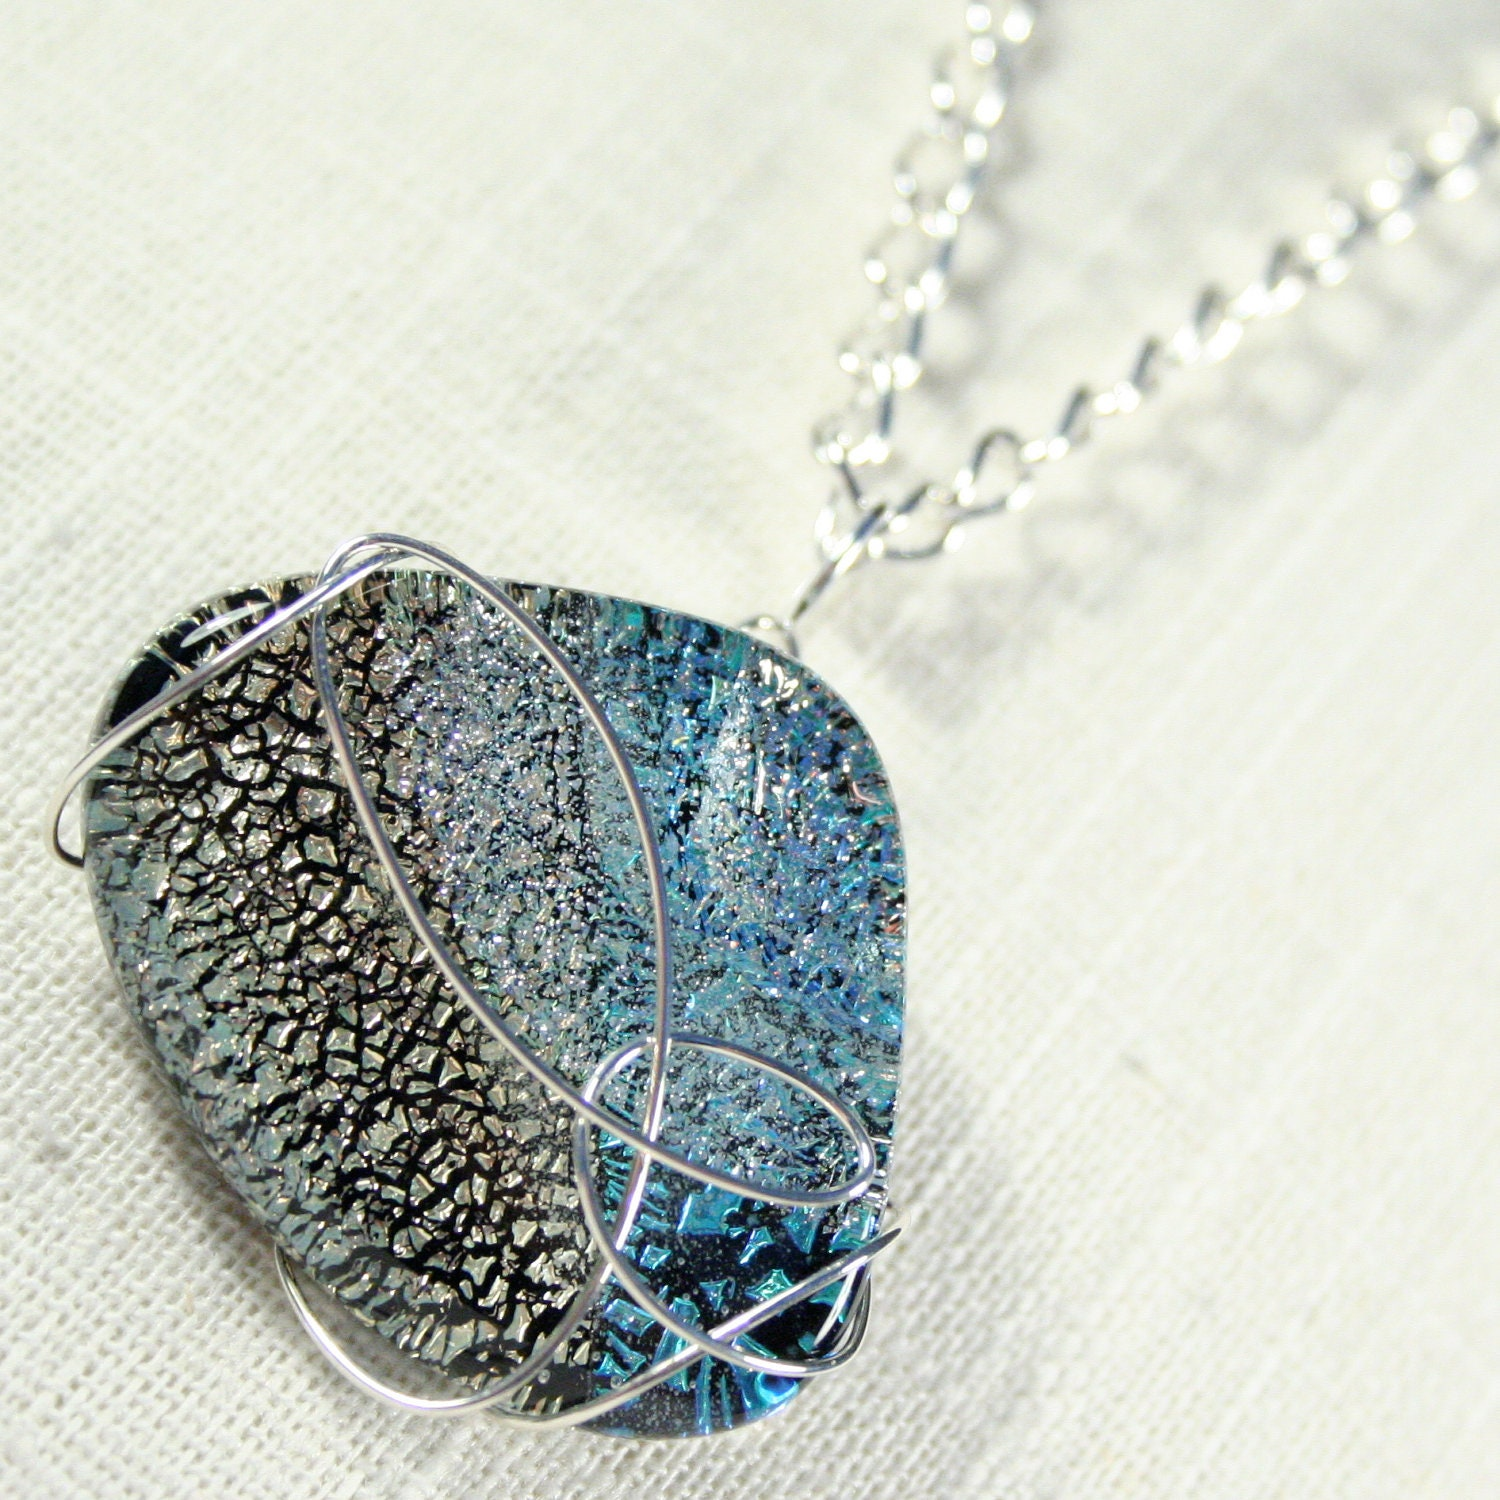 Necklace: Glass and wire, ocean inspired, dichroic glass necklace, wire-wrapped necklace